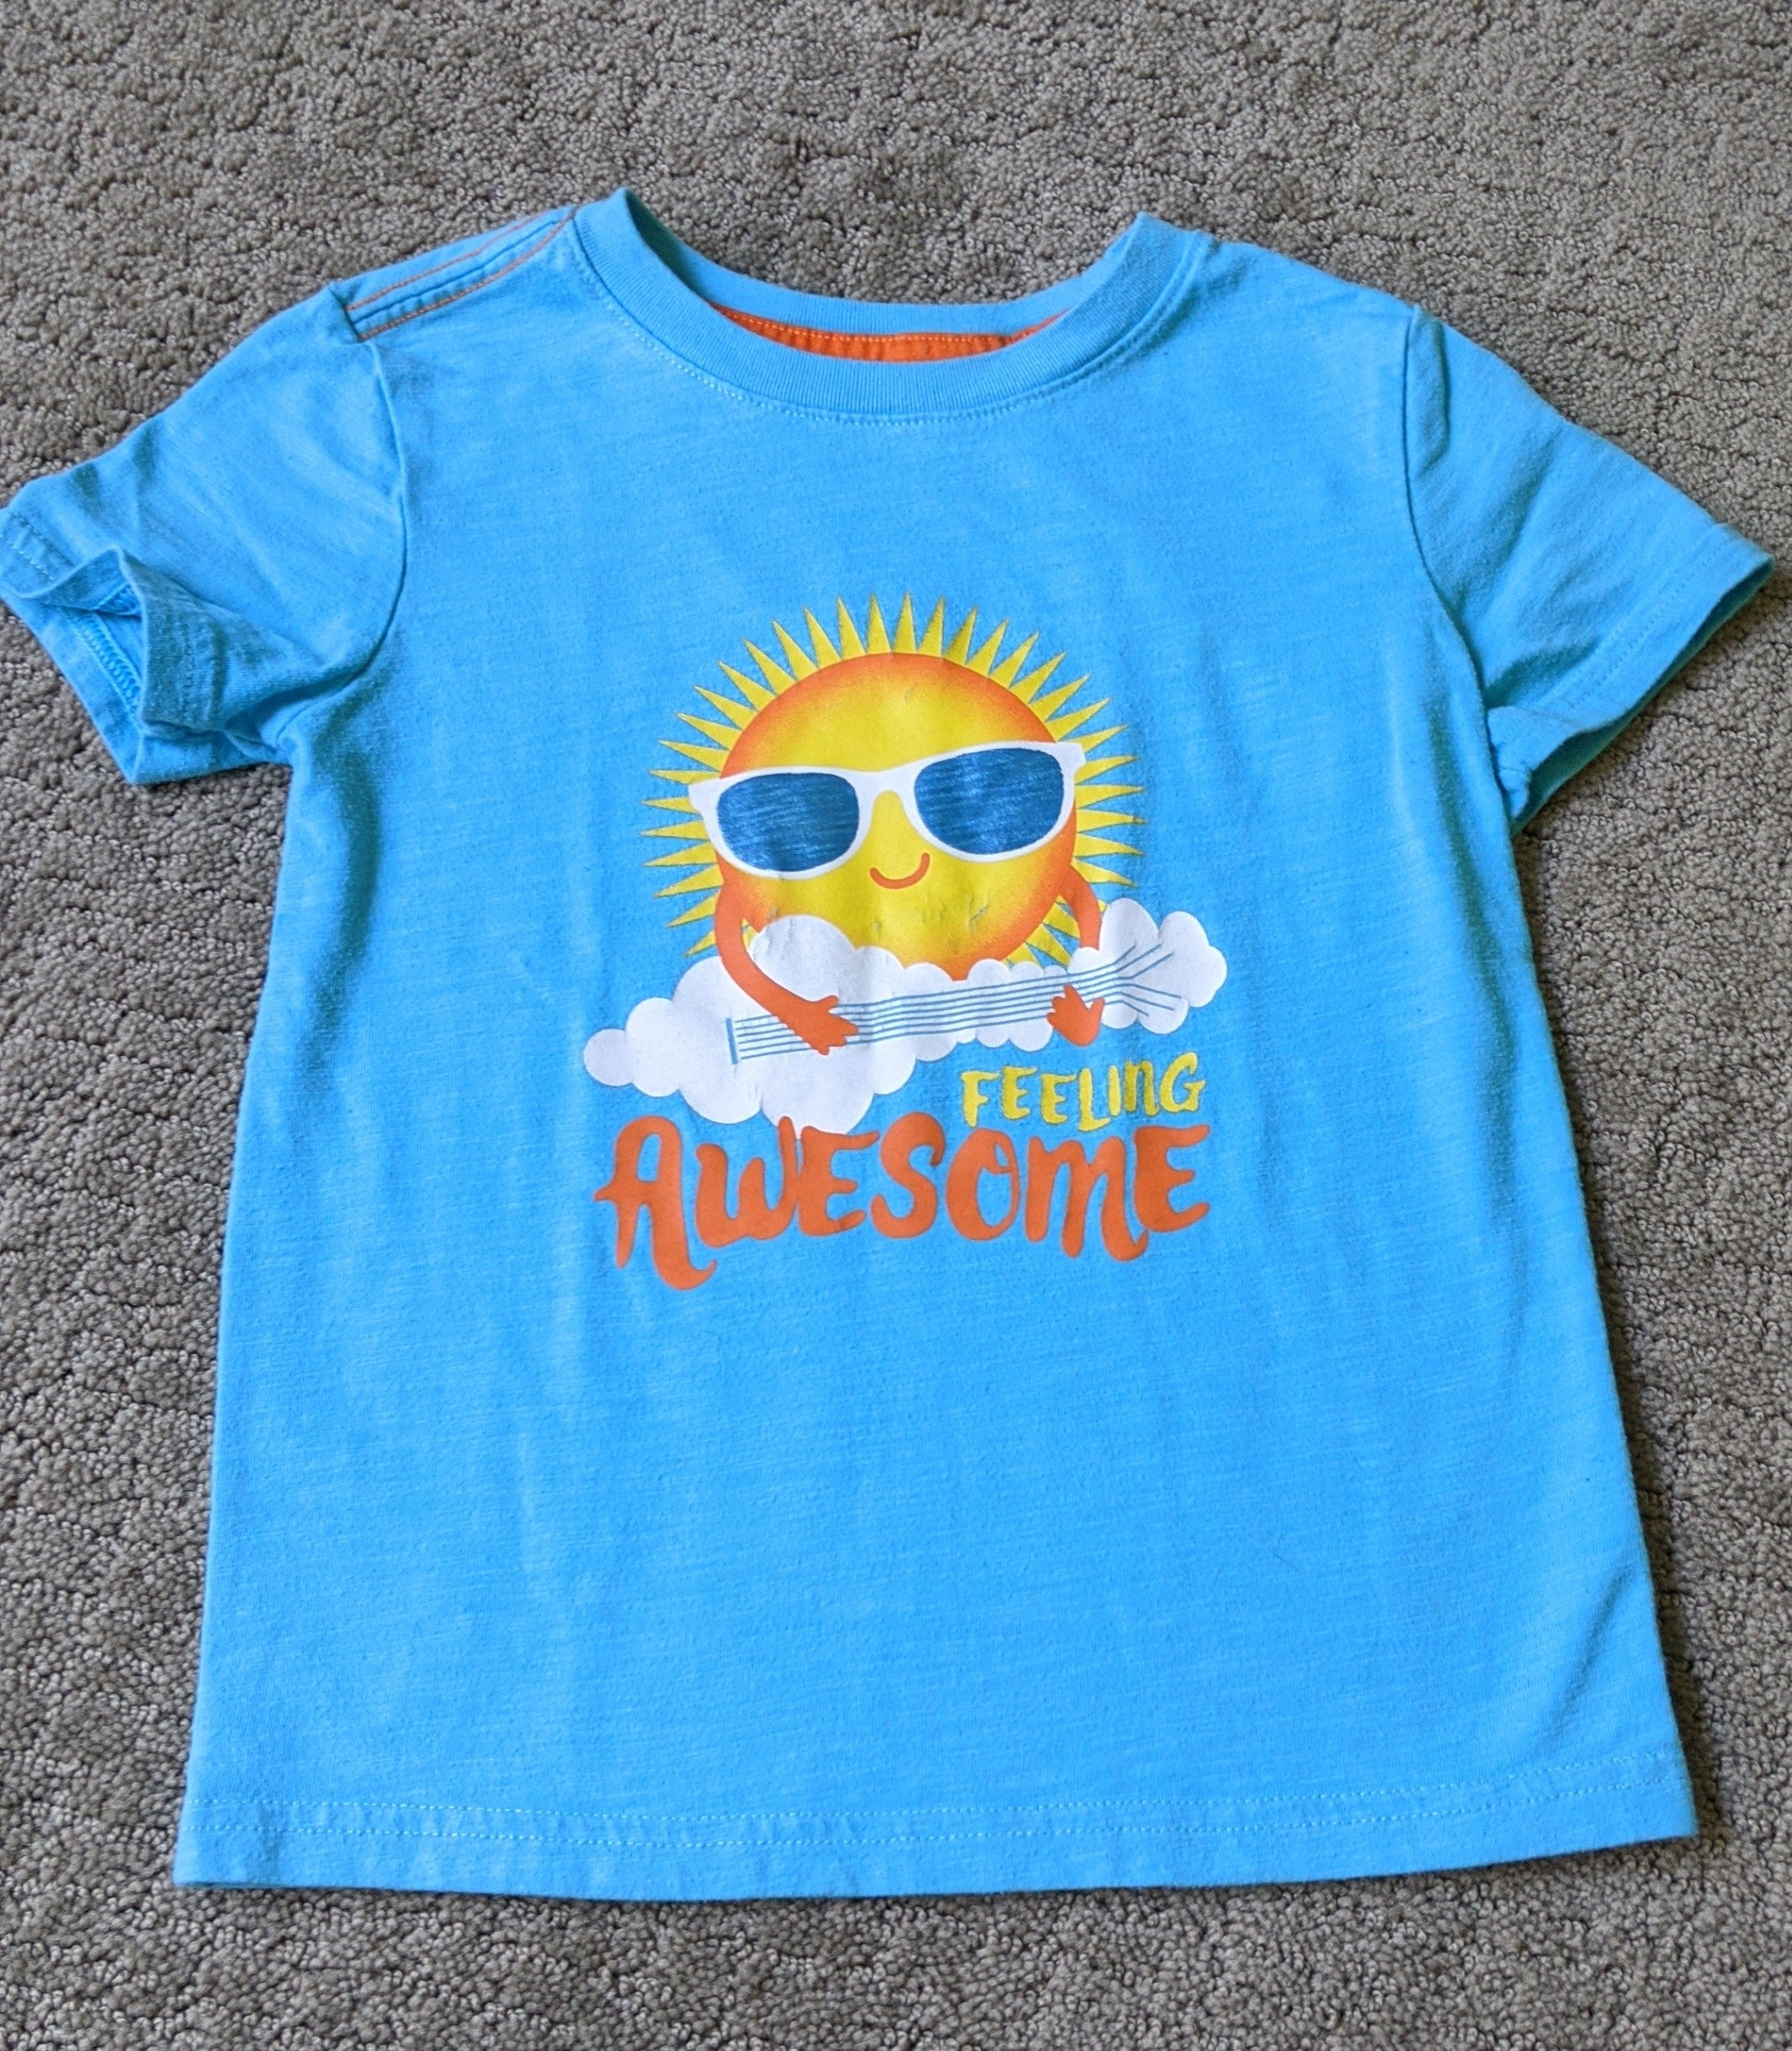 "Jack & Cat blue t shirt with sun ""Feeling awesome"", Size 5T"